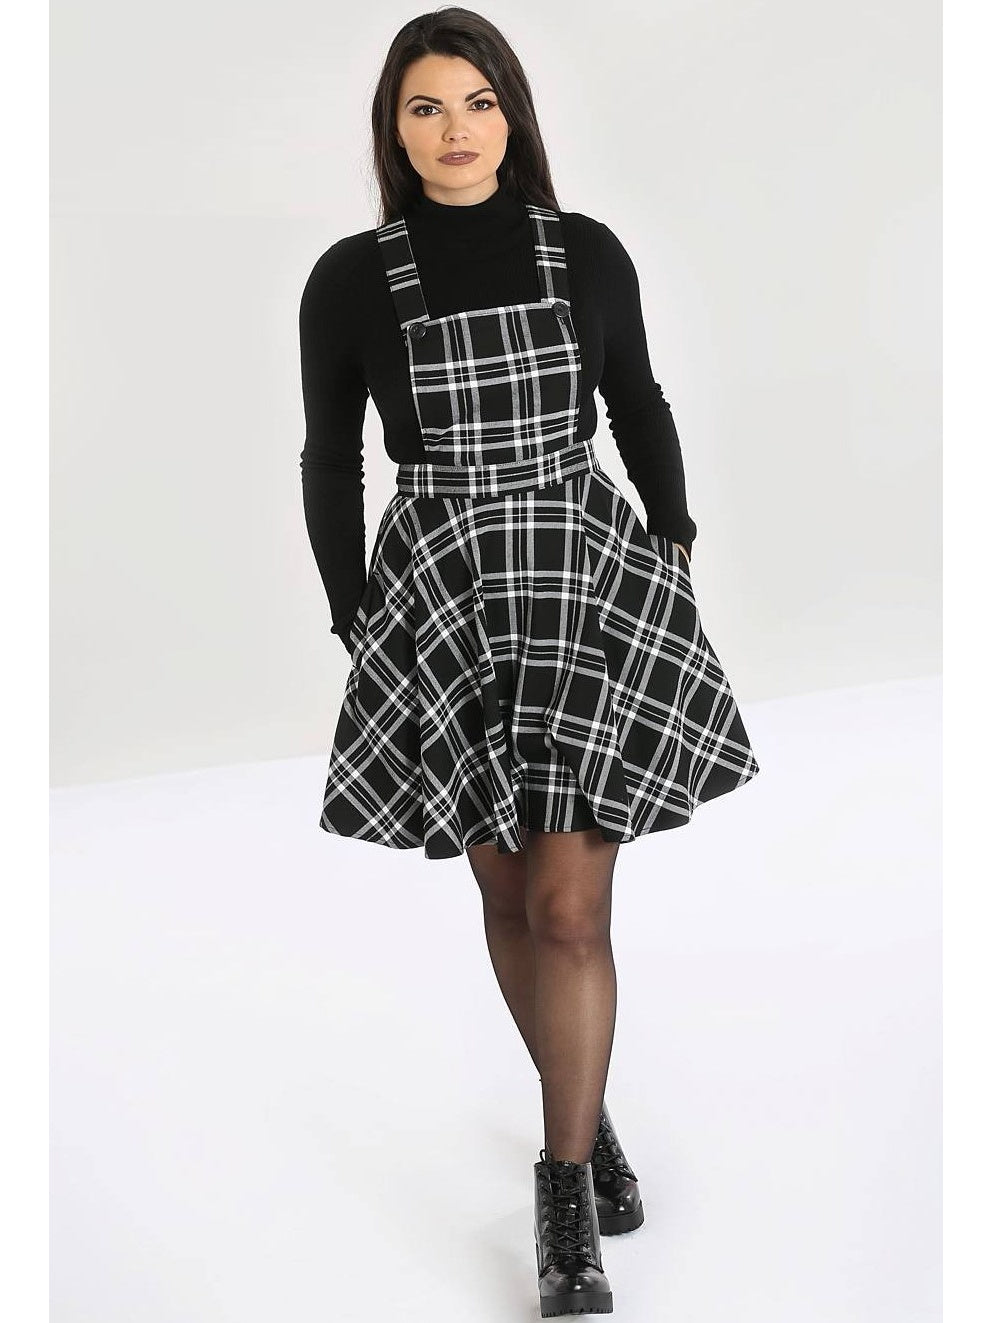 Islay Pinafore - Black